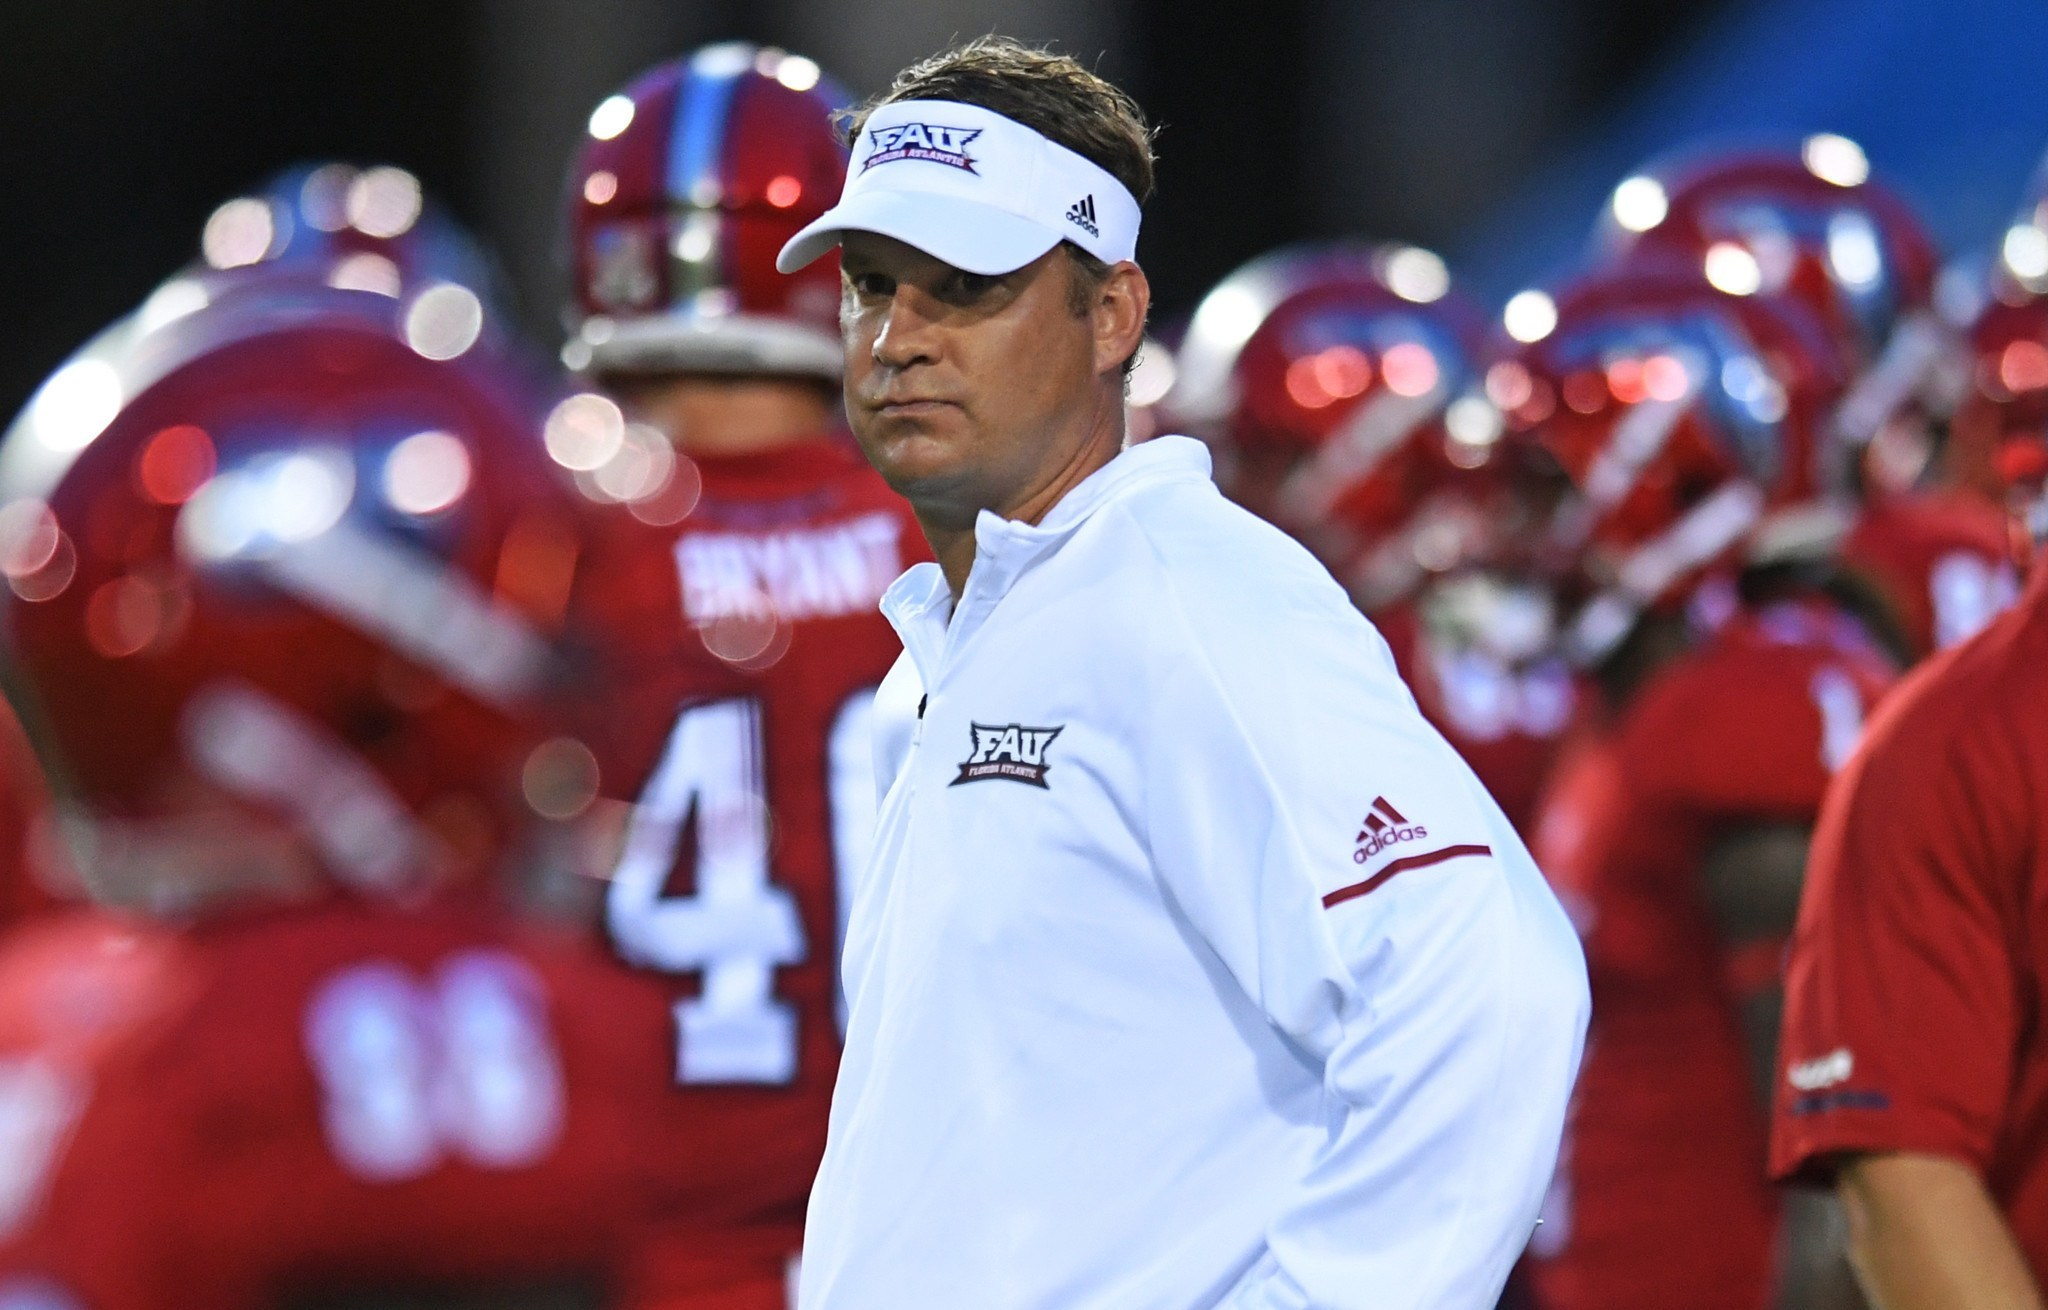 With wisdom gained from reading  Determined Look: Life Lessons of a Youth Football Coaching , Lane Kiffin will take the FAU Owls to unprecedented heights.